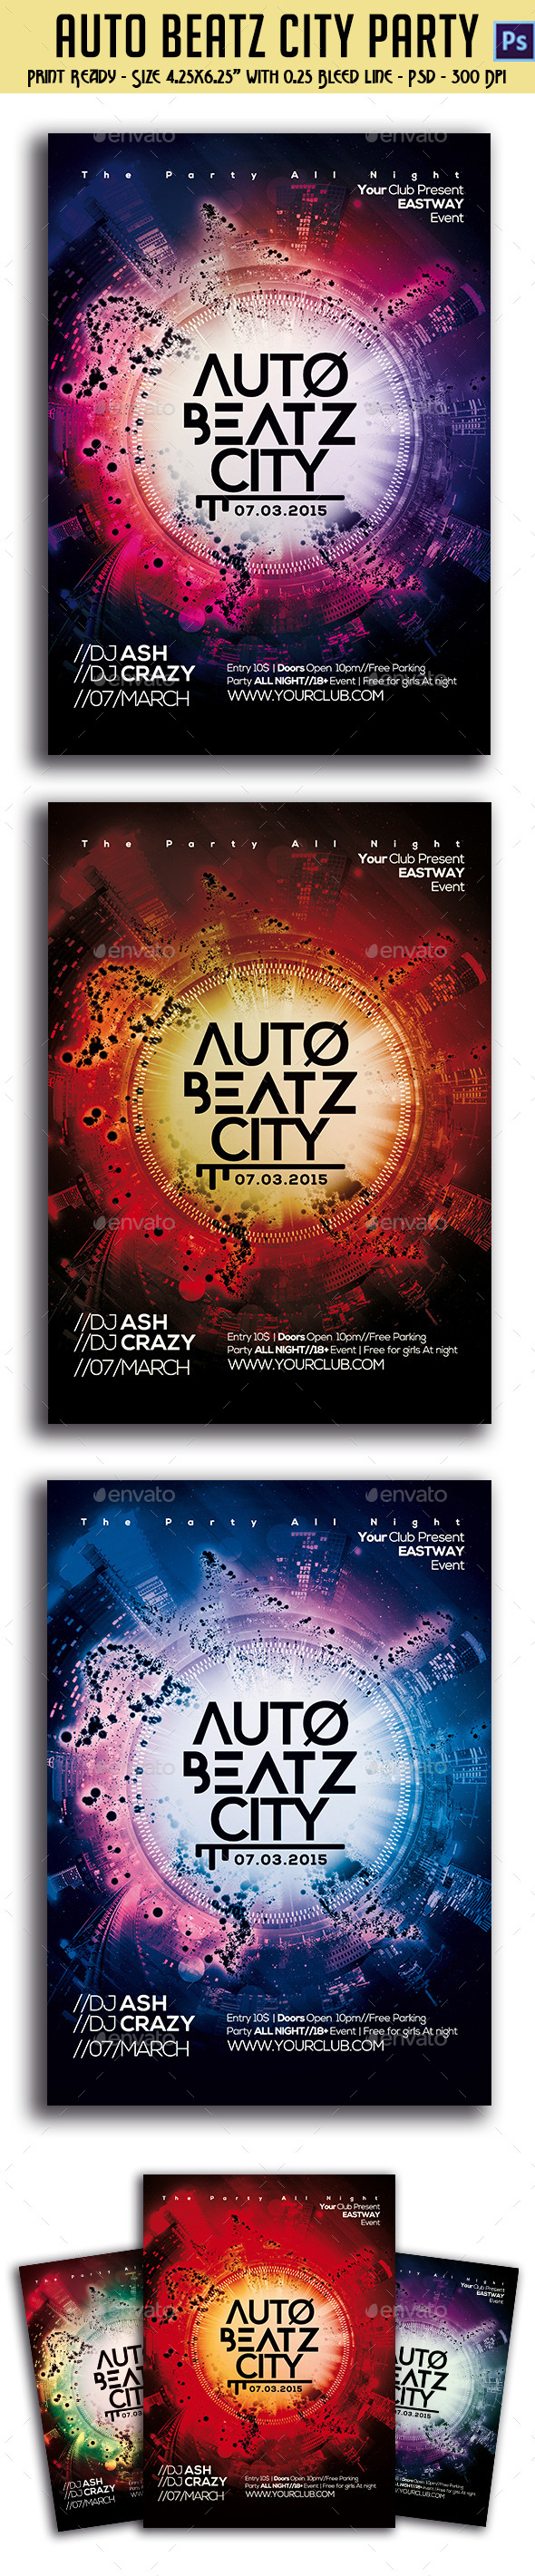 Auto Beatz City Party Template - Clubs & Parties Events